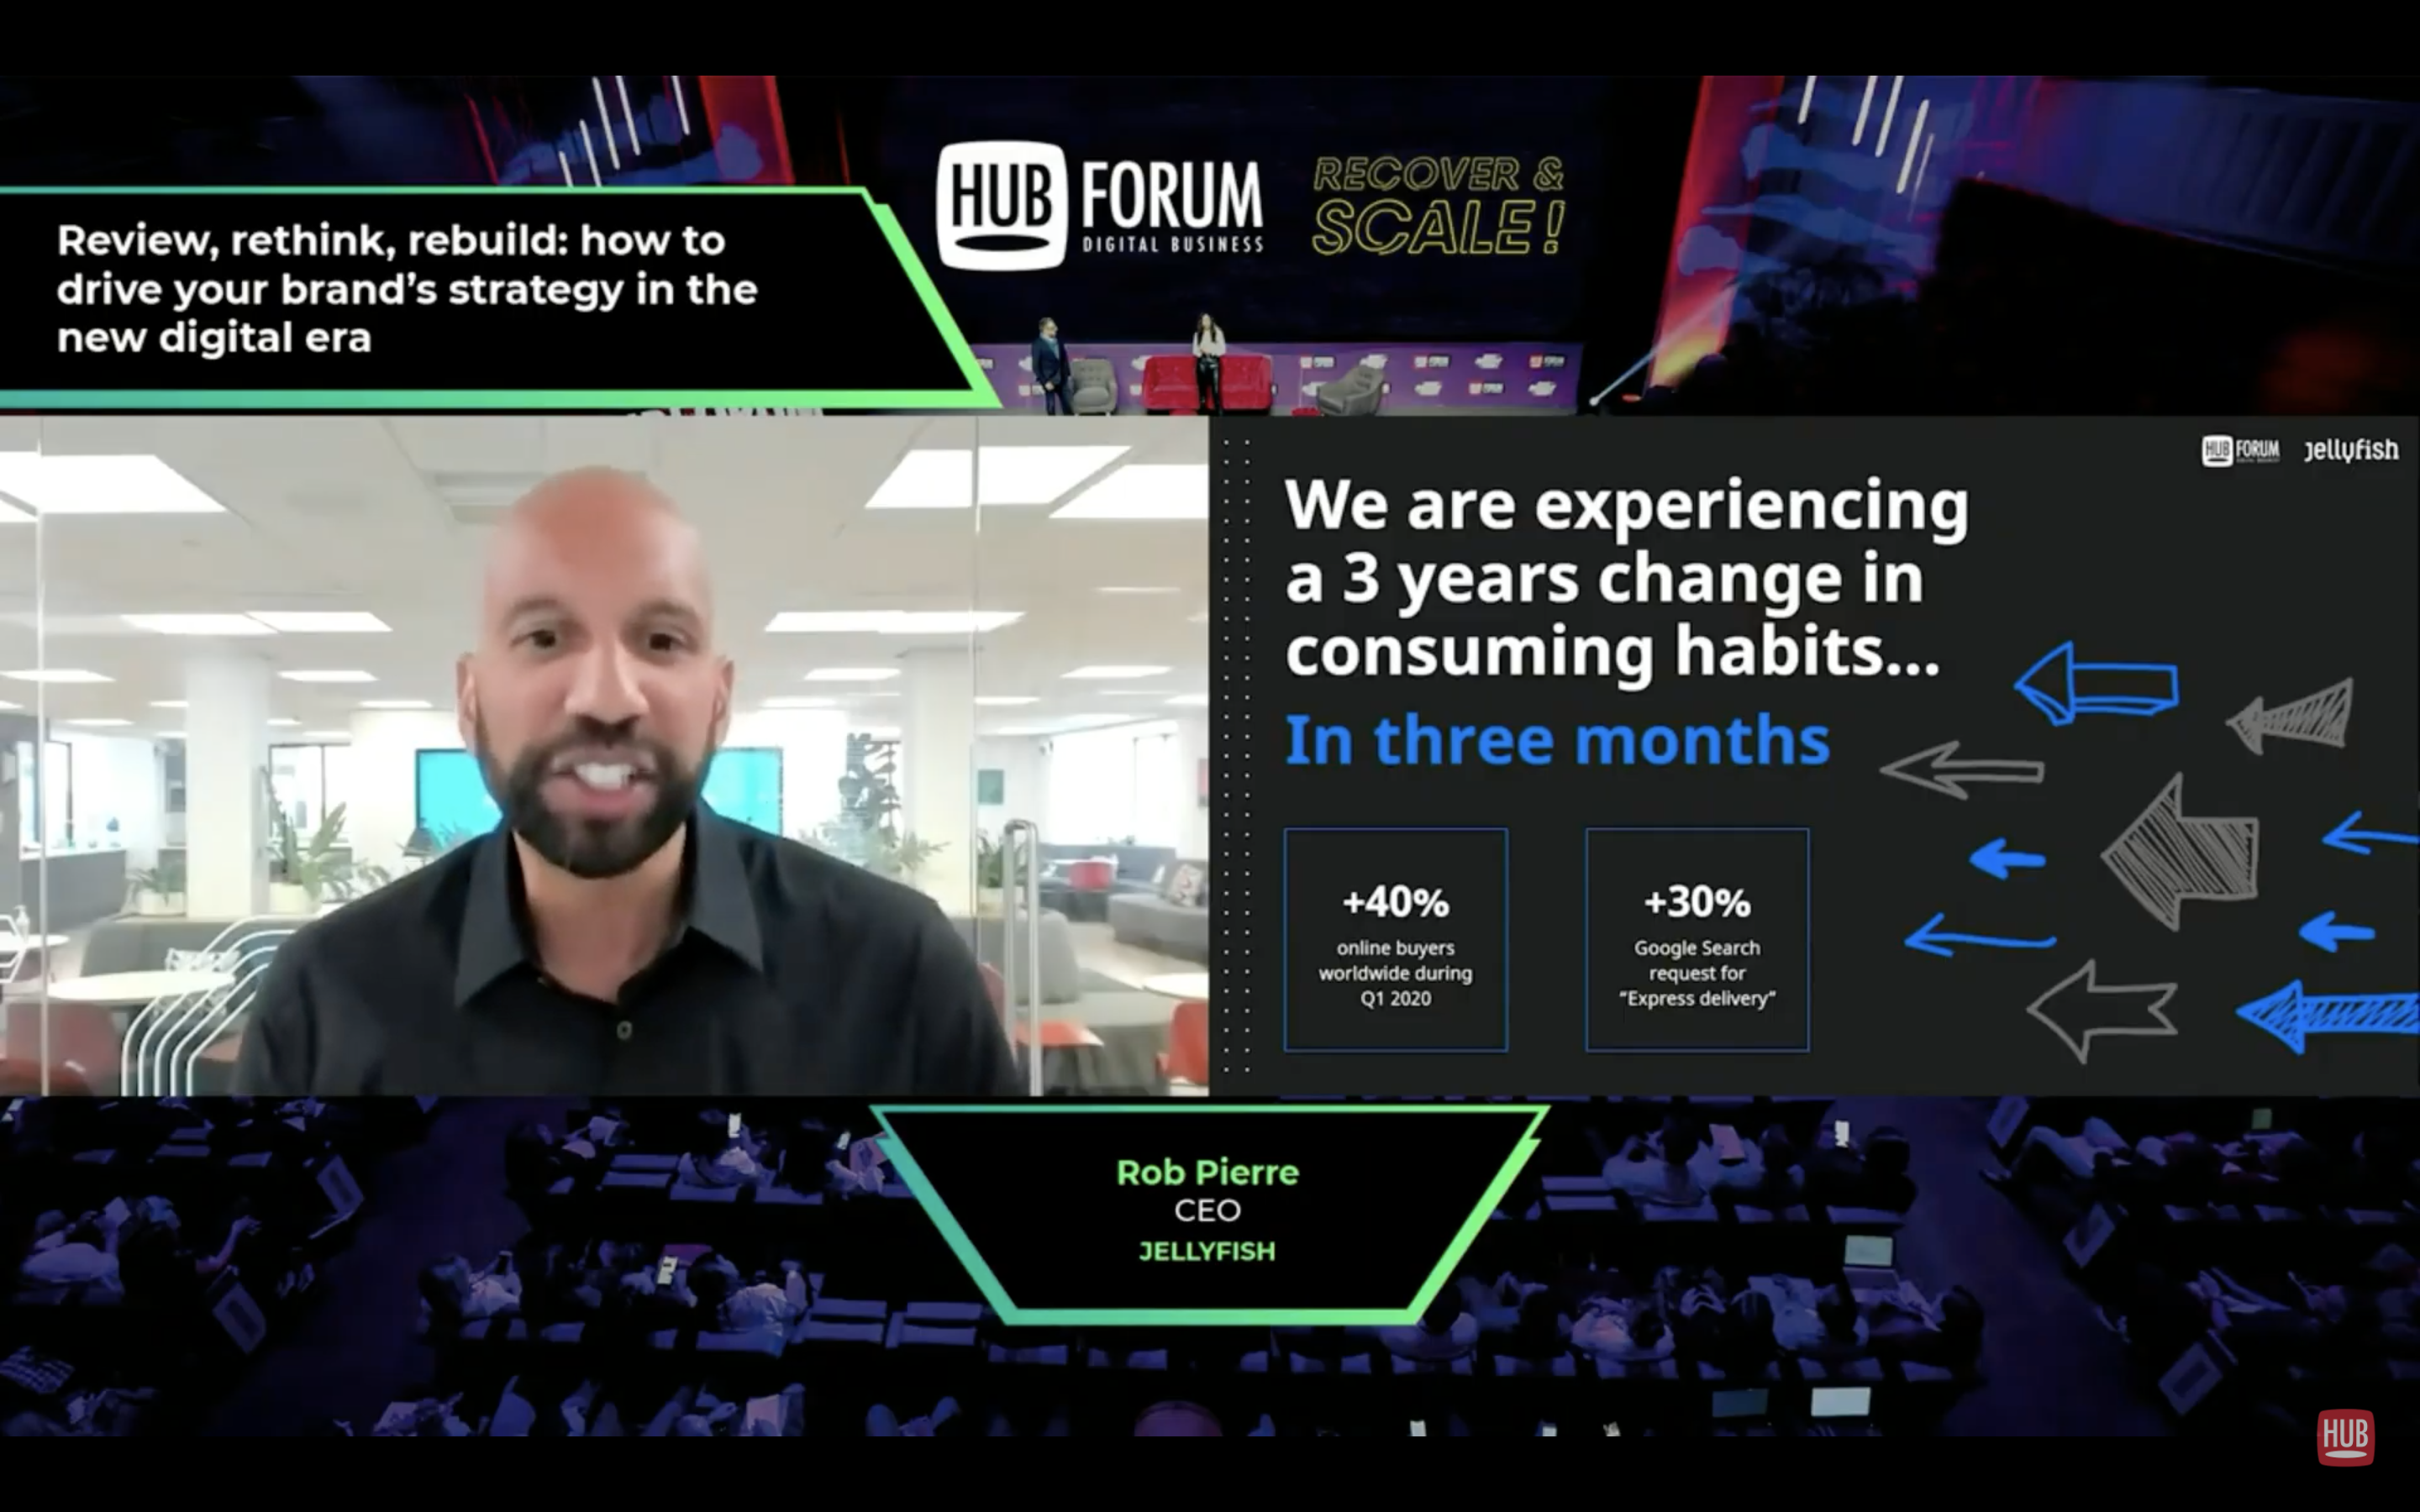 Rob Pierre, CEO de Jellyfish, au HUBFORUM 2020